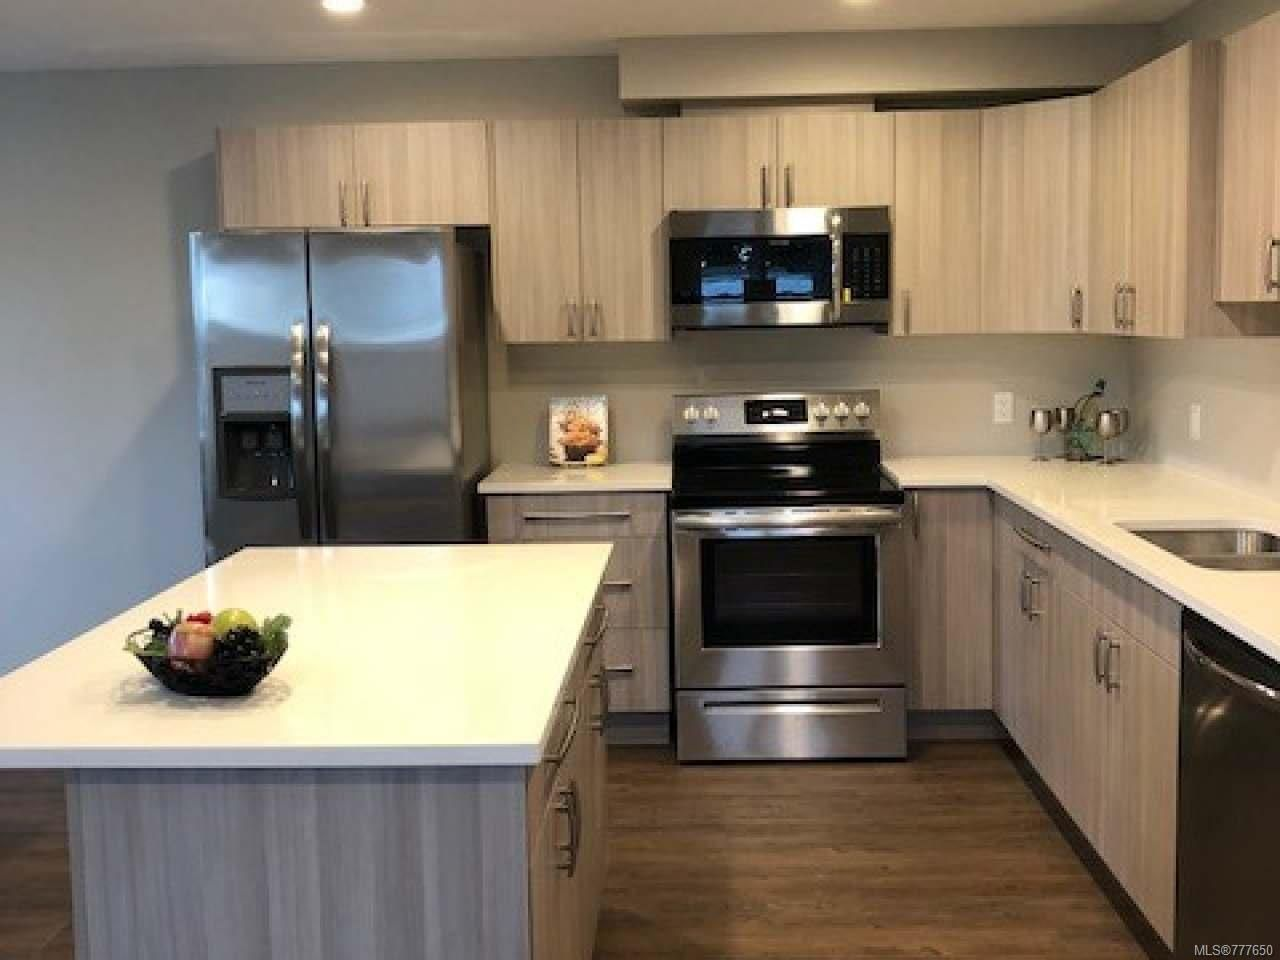 Photo 3: Photos: 2 535 Petersen Rd in CAMPBELL RIVER: CR Campbell River West Half Duplex for sale (Campbell River)  : MLS®# 777650